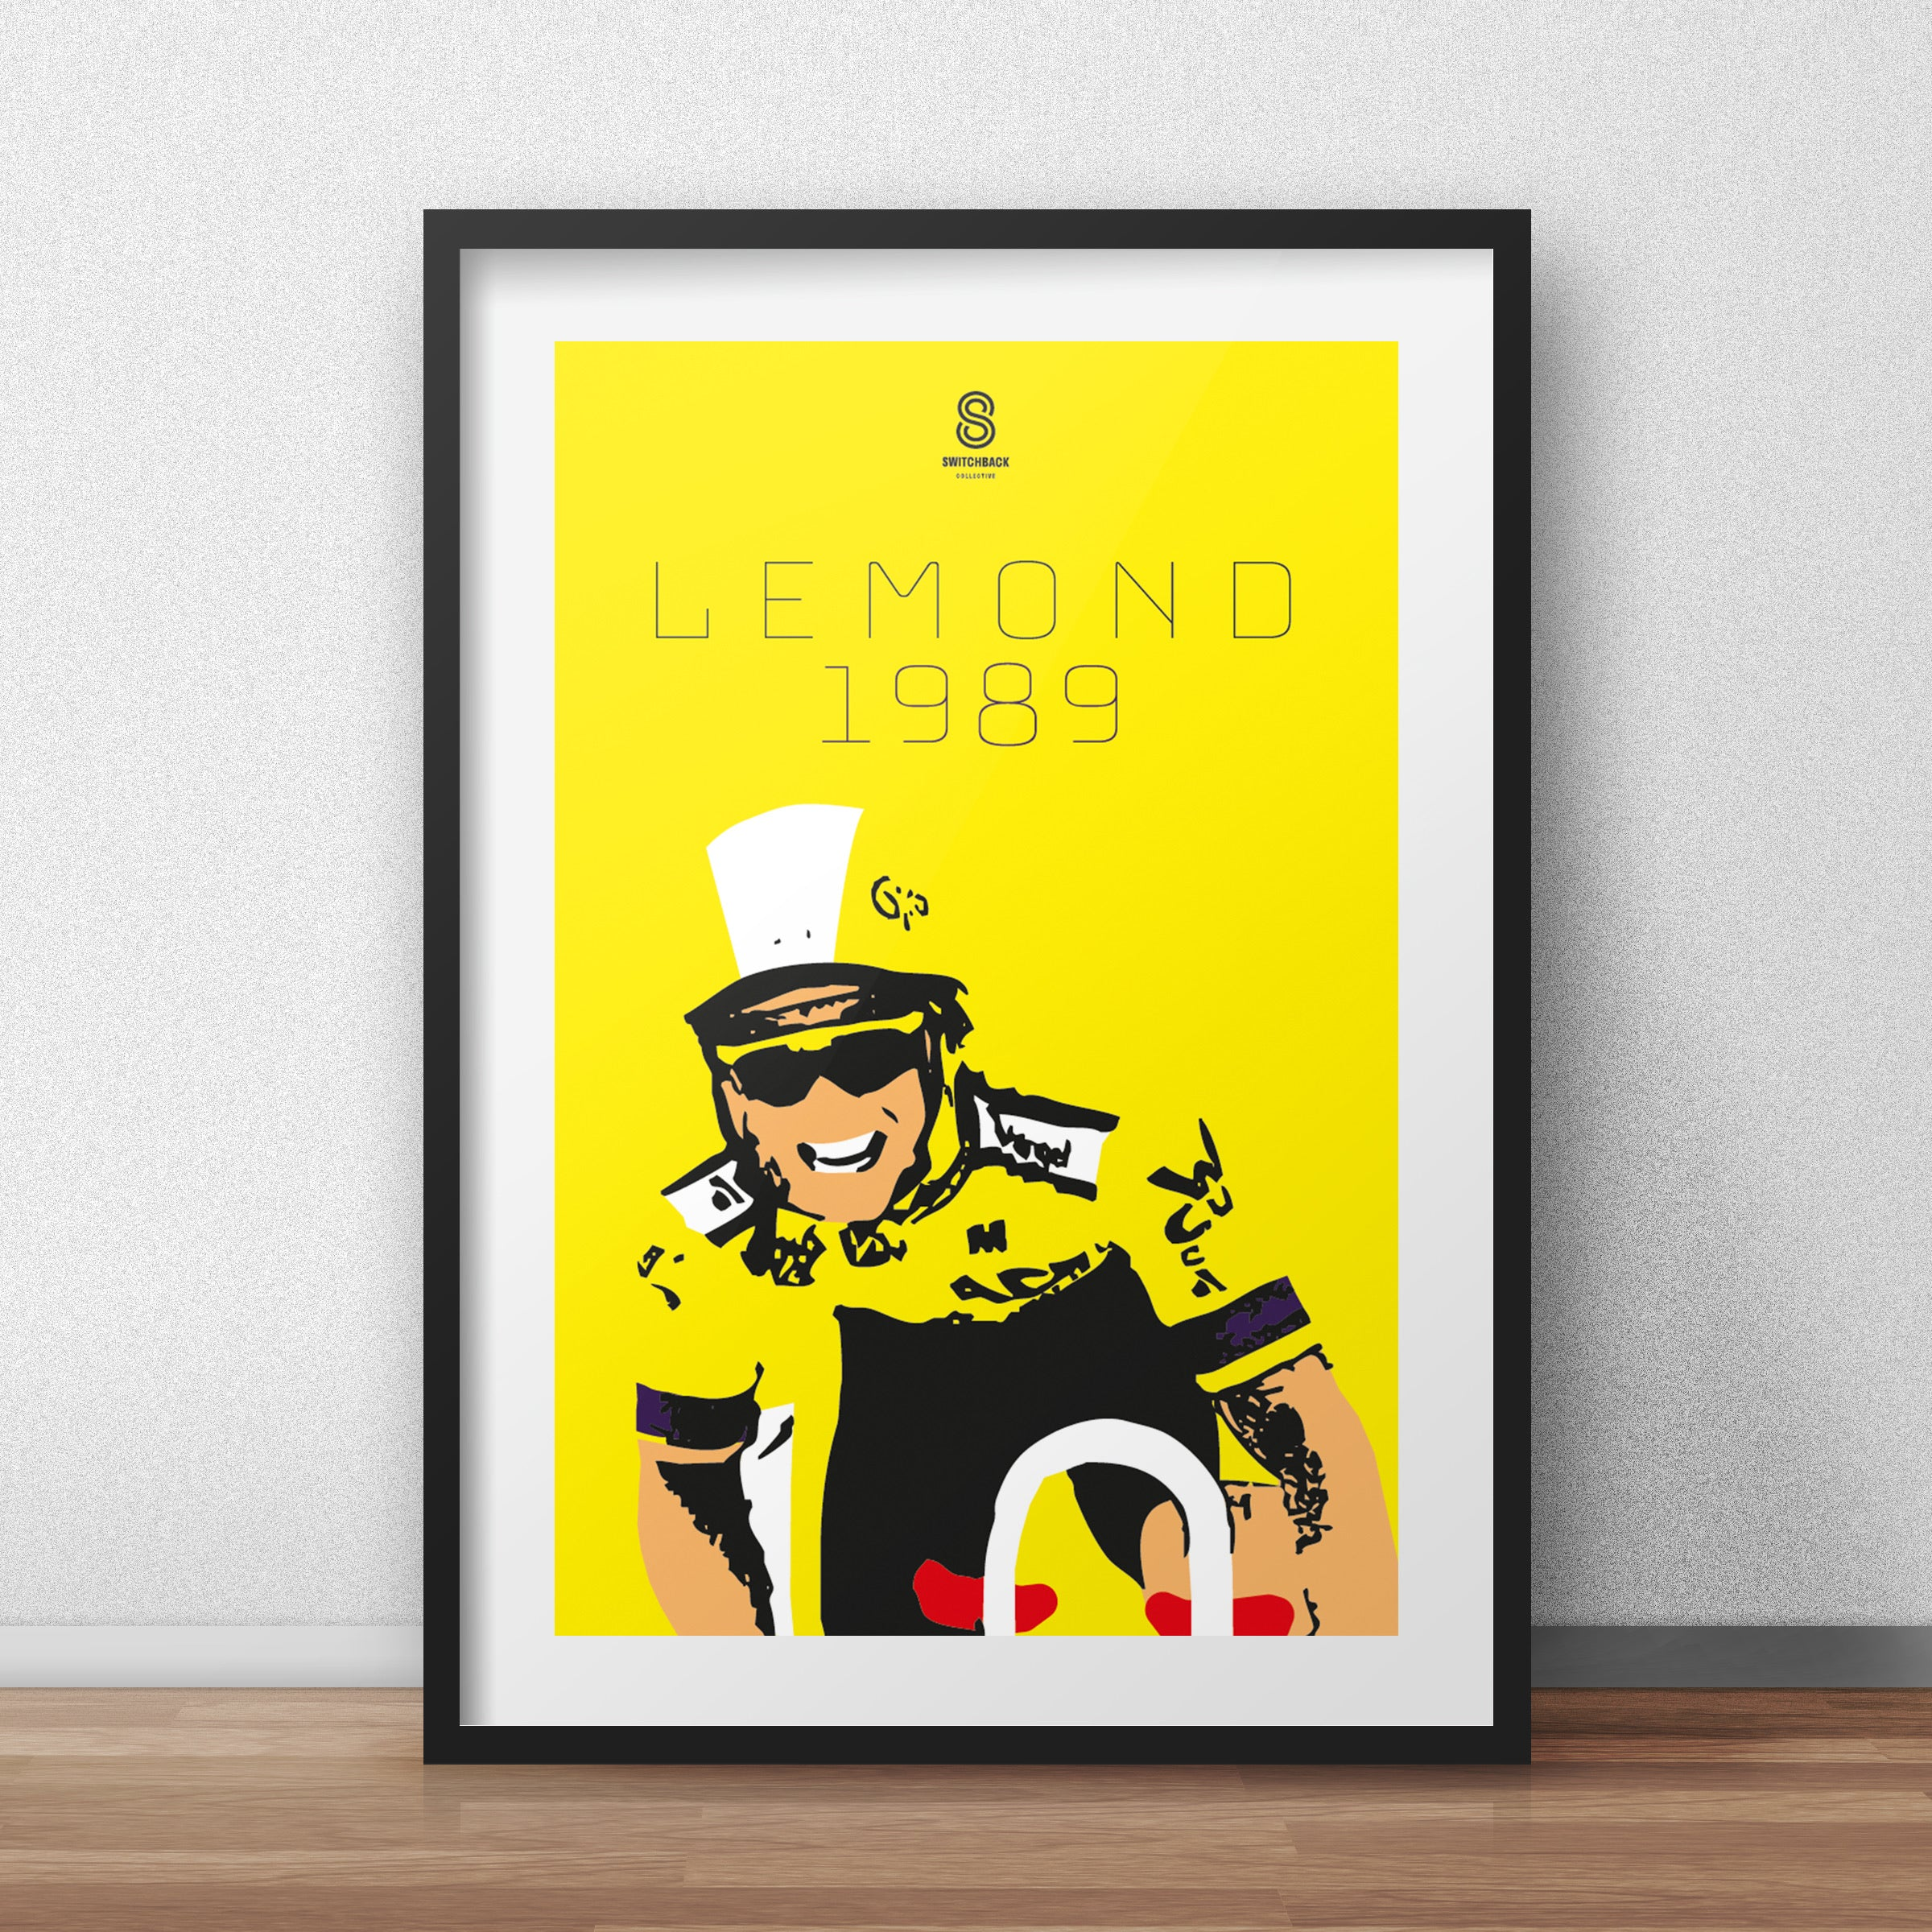 Greg Lemond Tour De France 1989 - Limited Edition Vintage cycling team print